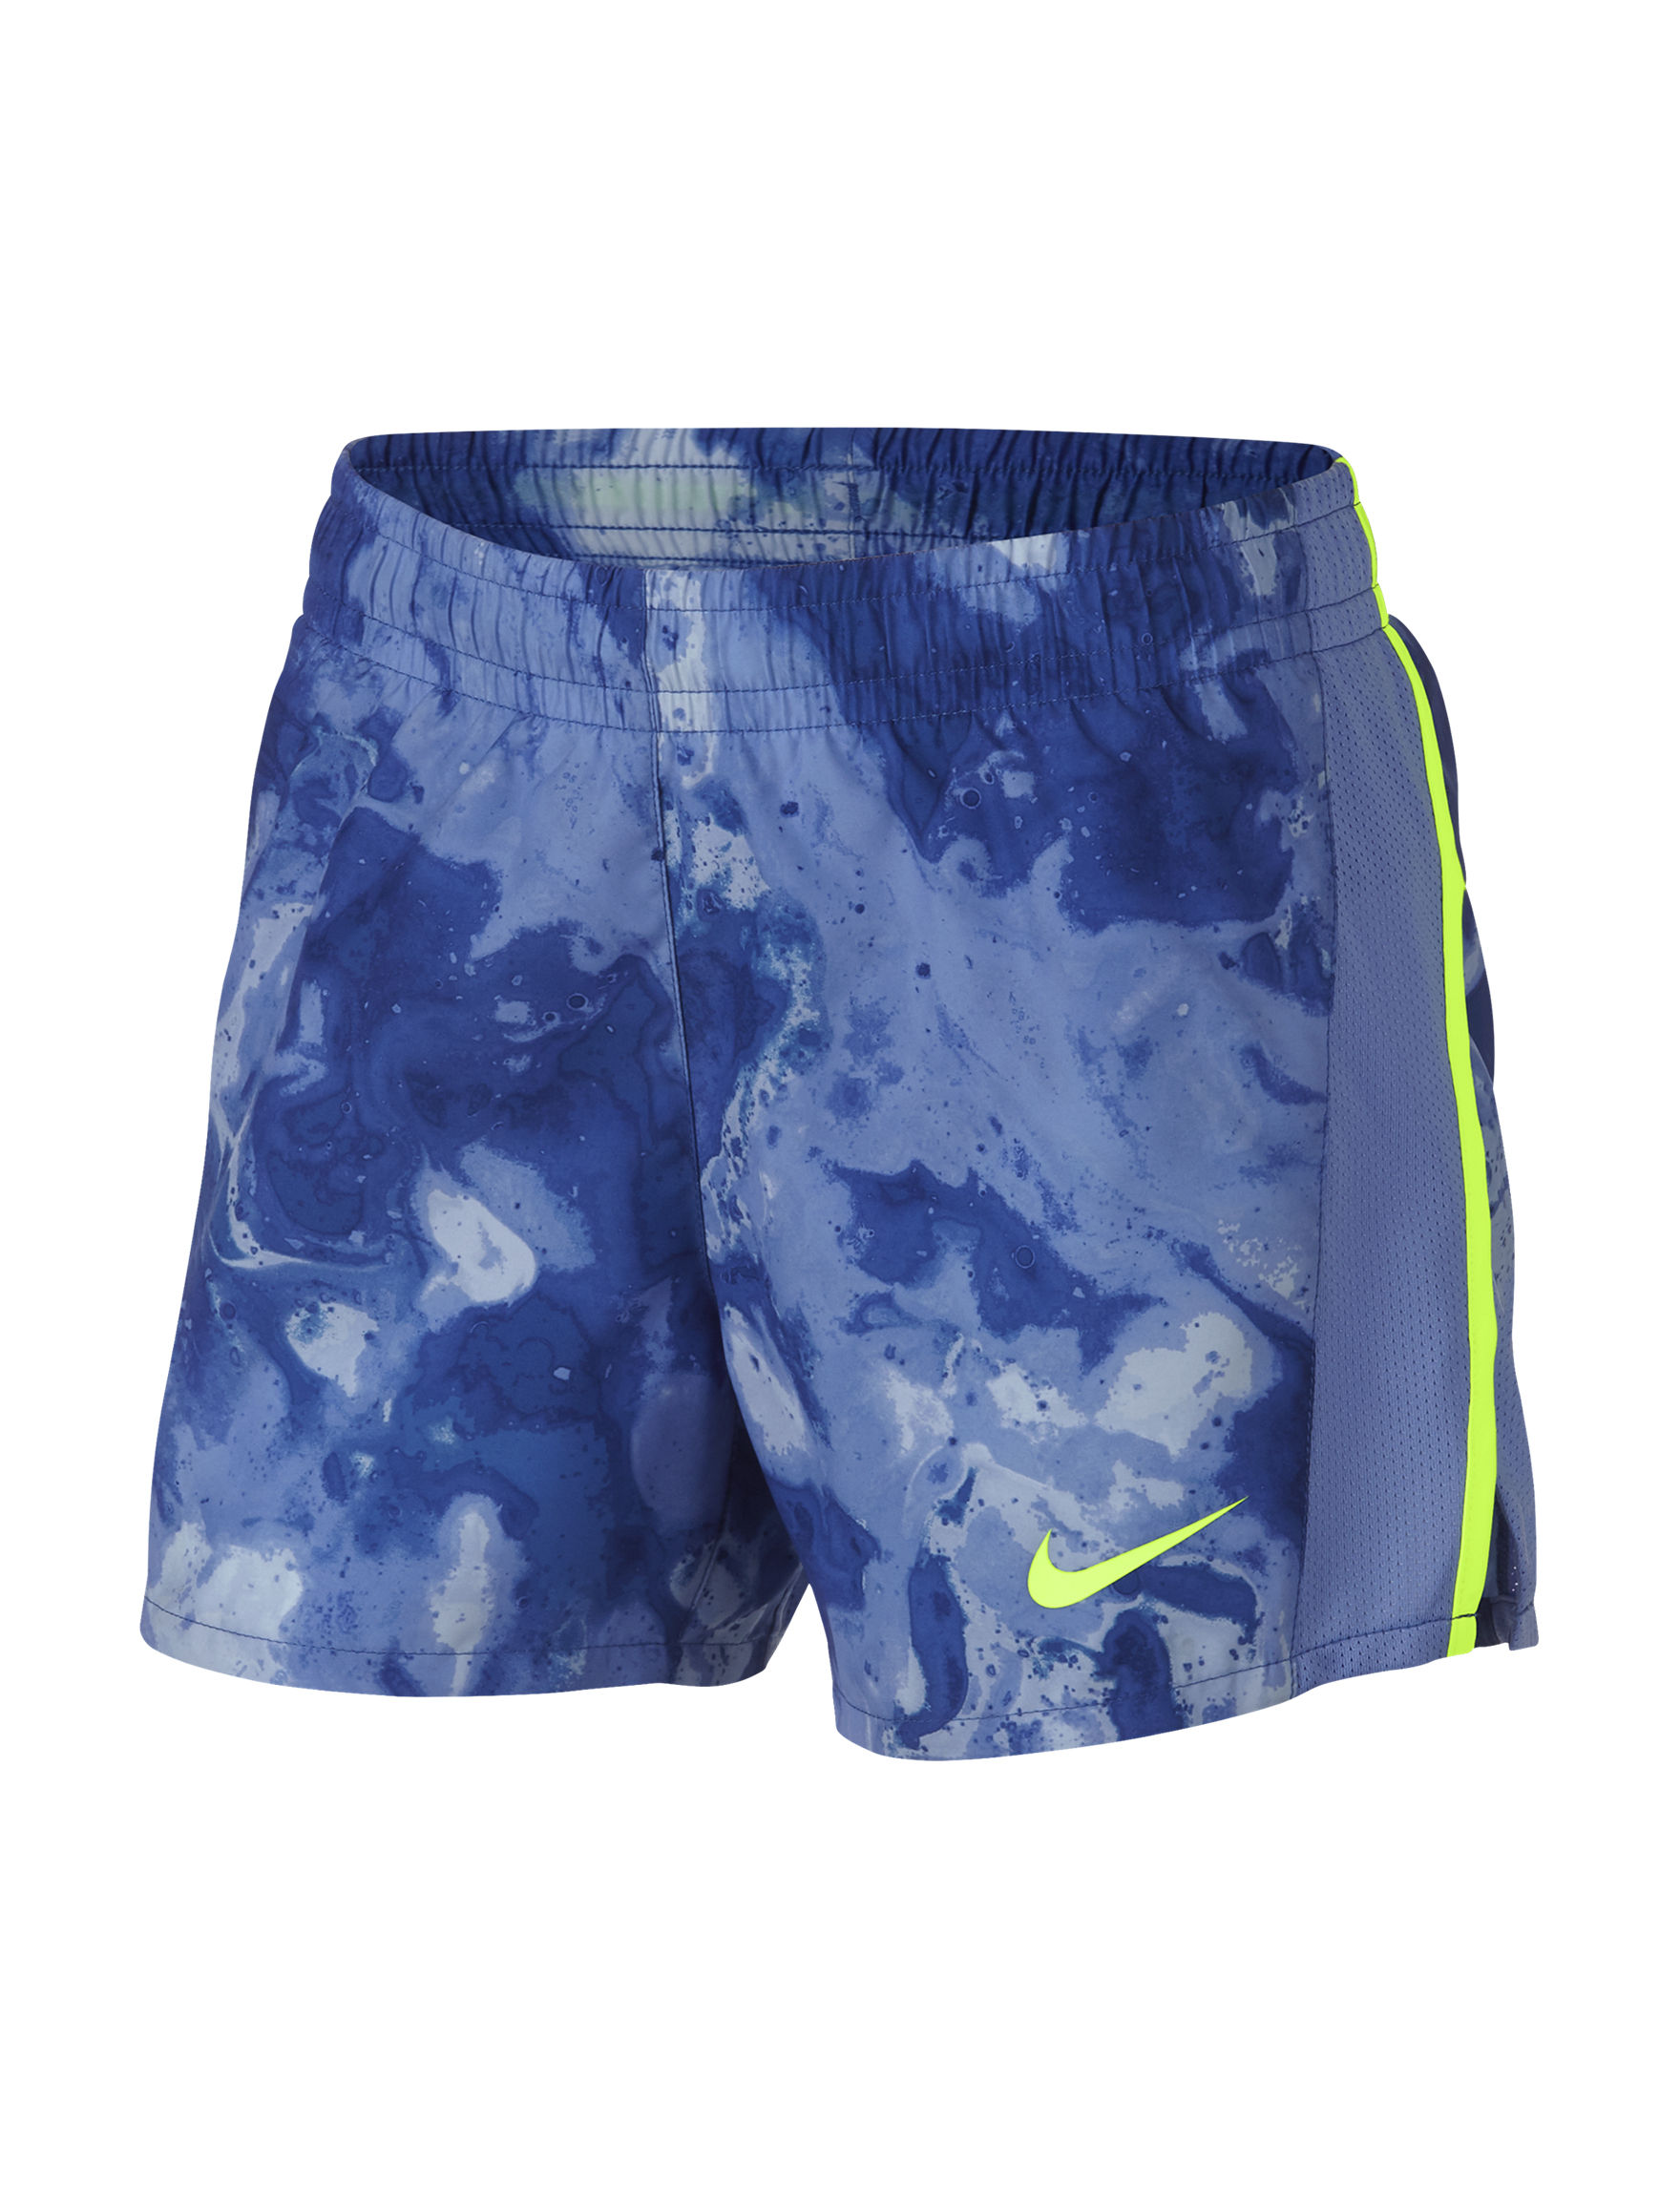 Nike Blue Relaxed